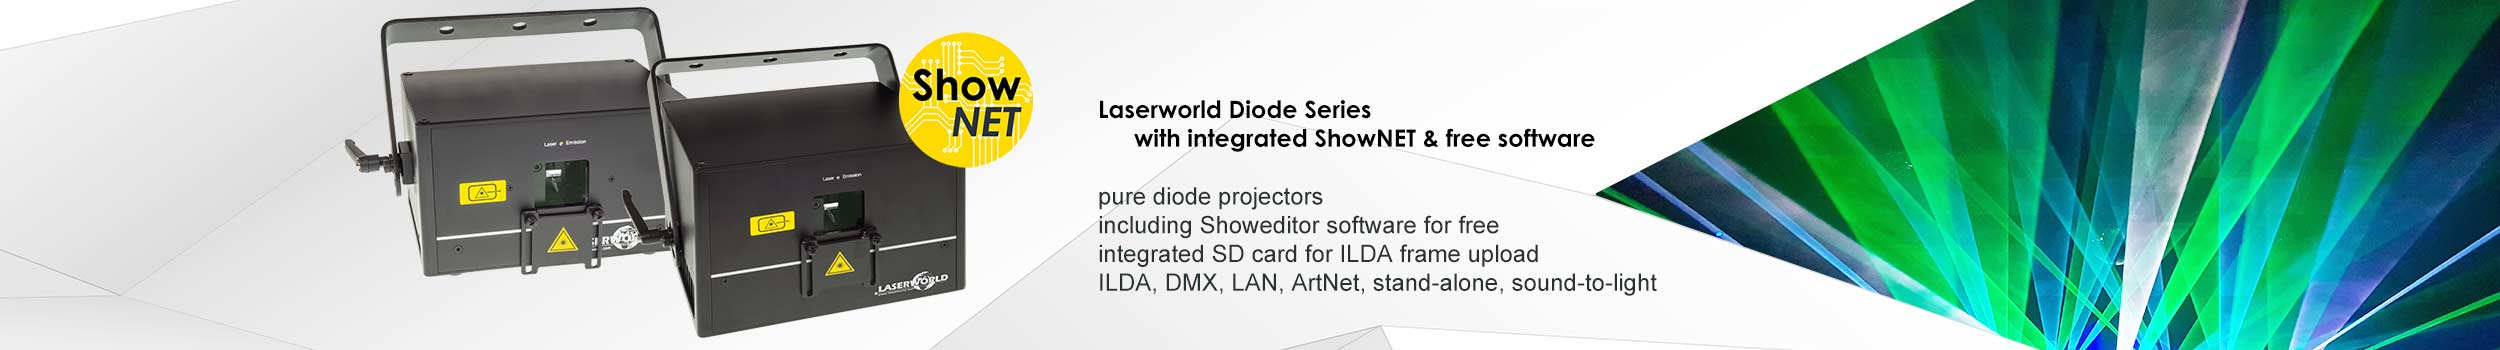 Laserworld Diode Series with ShowNET